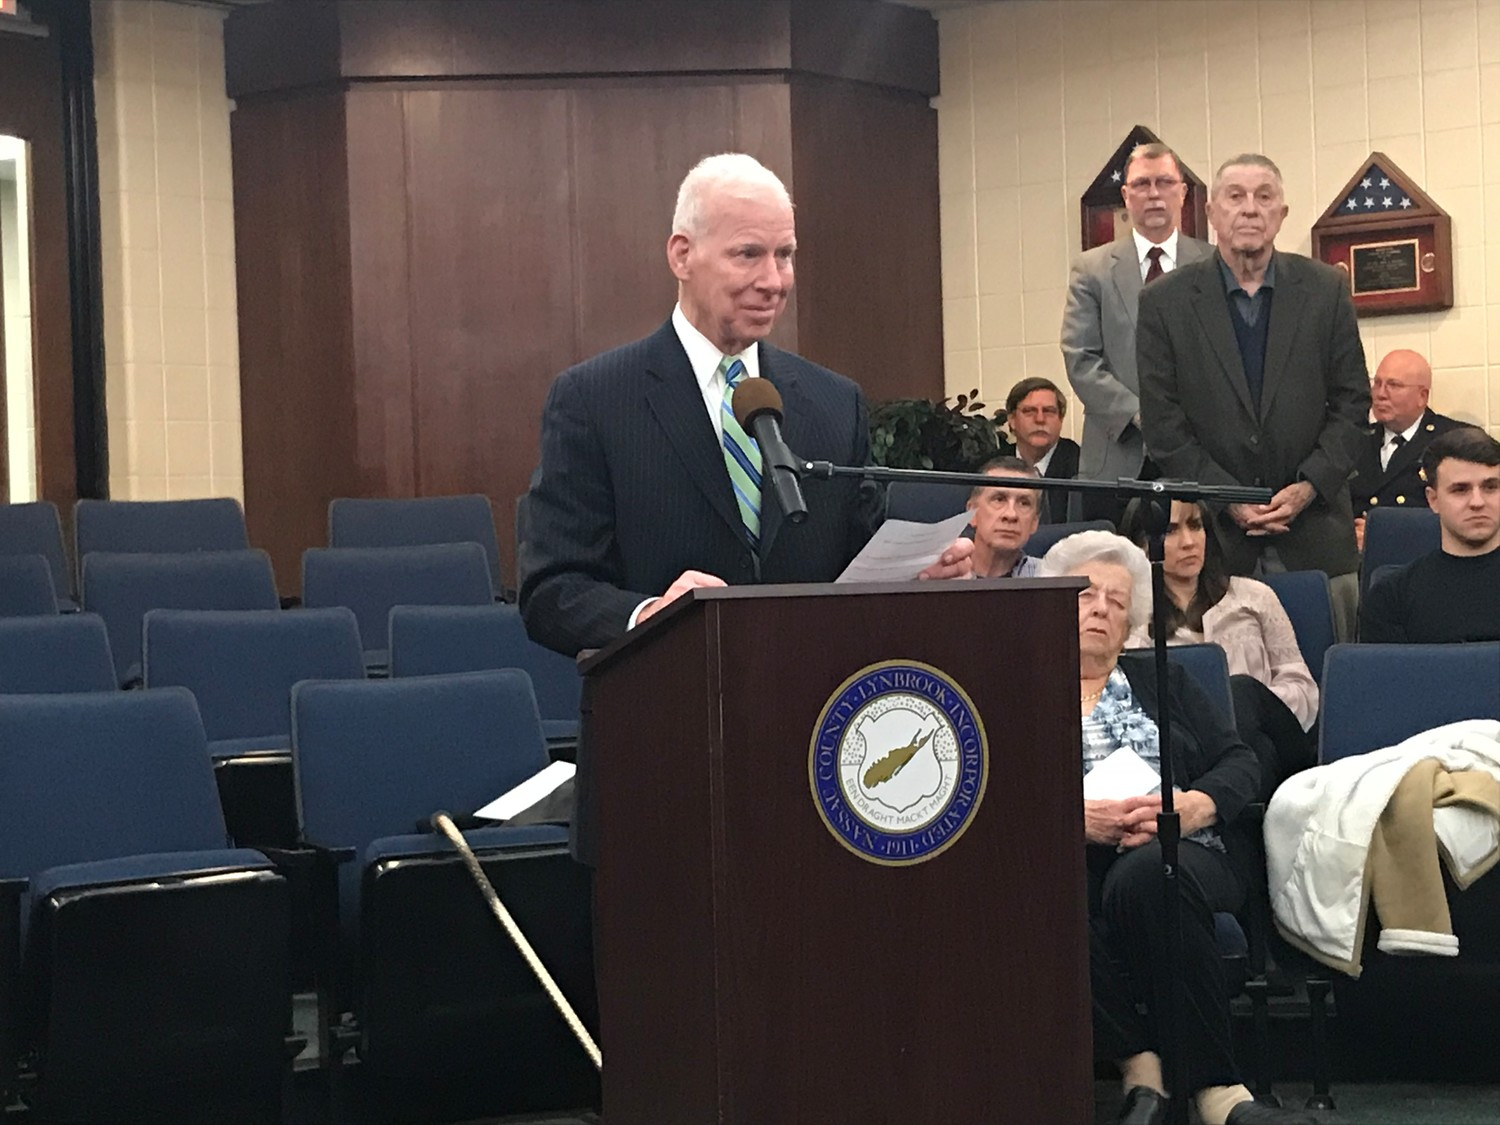 Village Attorney Peter Ledwith addressed the audience at the Lynbrook village board meeting on April 2 to reflect on his 41-year career upon his retirement.